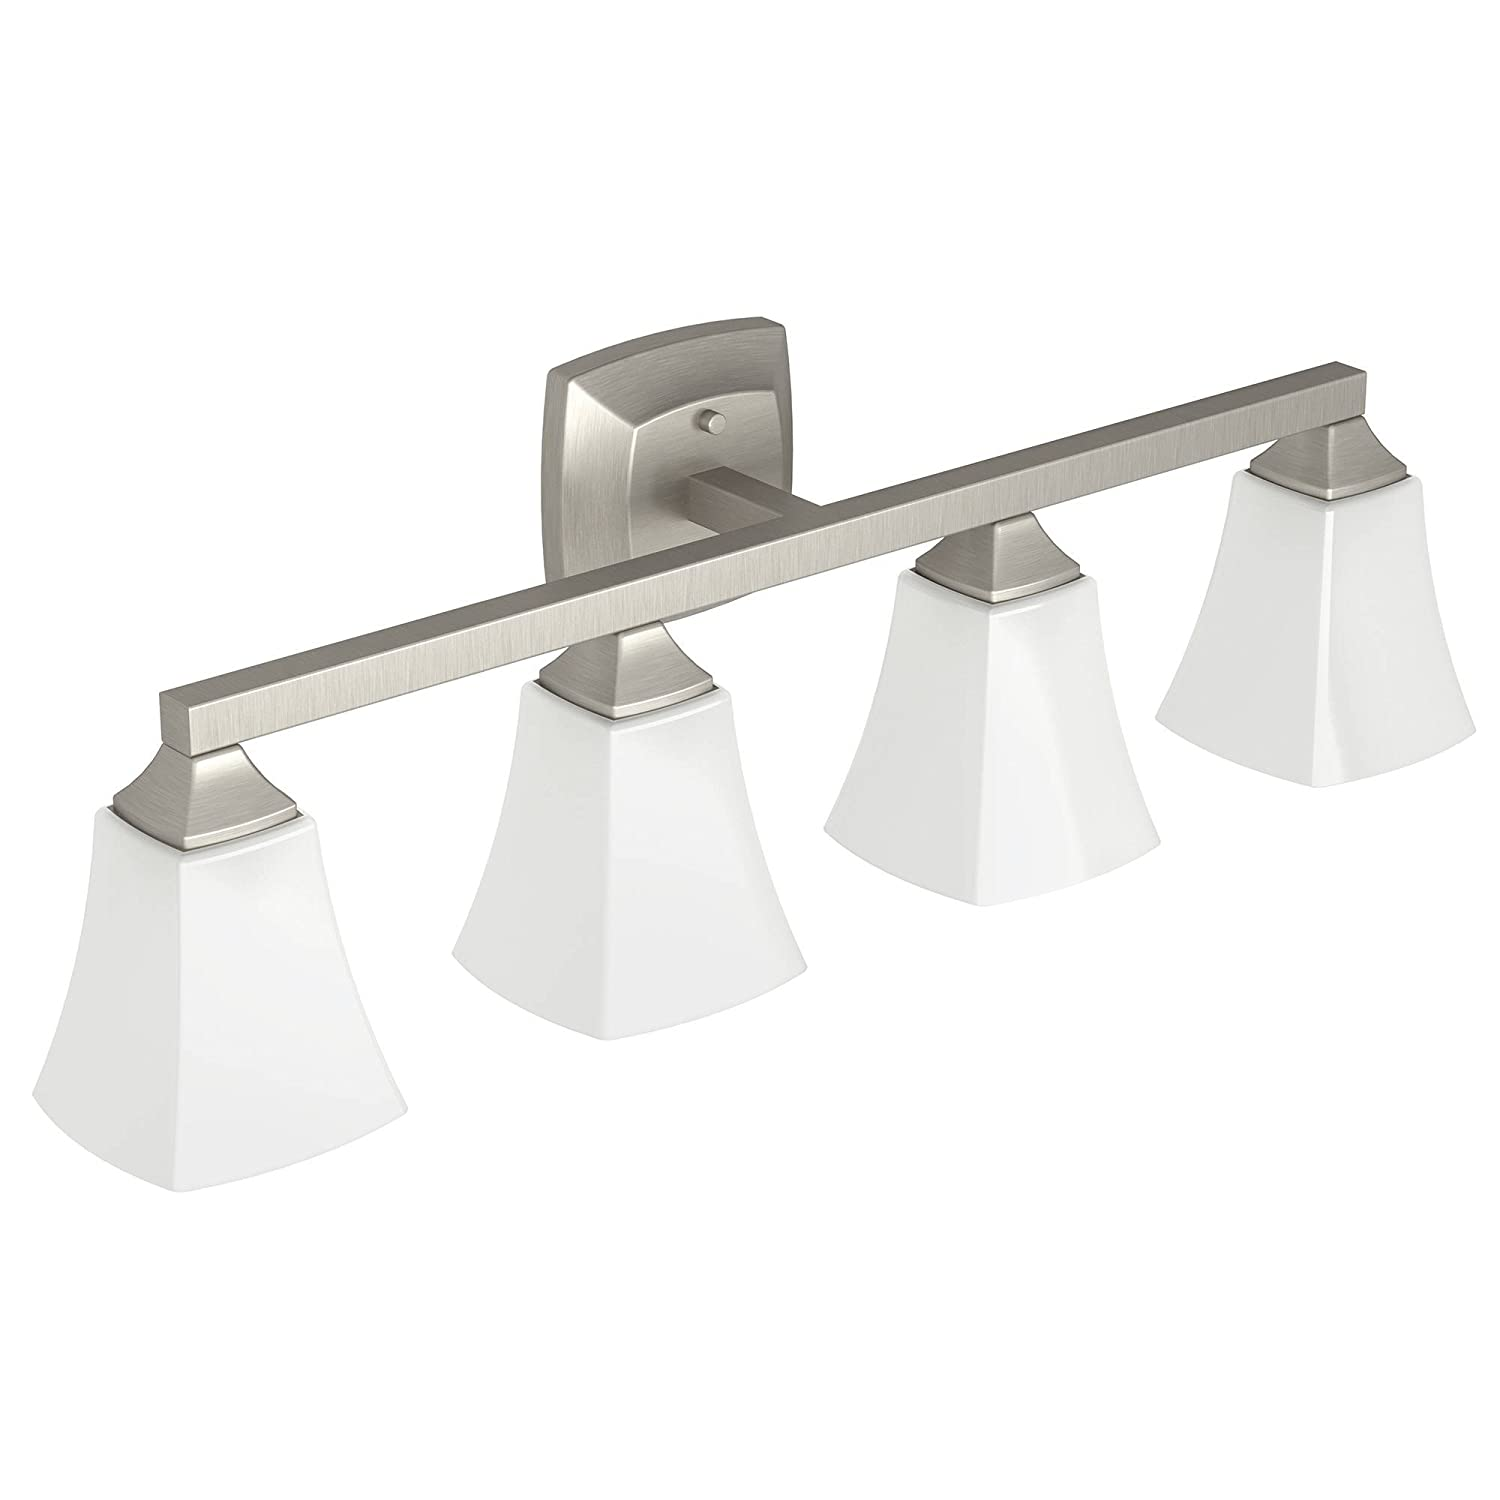 Moen yb5164bn voss bath lighting four globe brushed nickel moen yb5164bn voss bath lighting four globe brushed nickel amazon mozeypictures Image collections